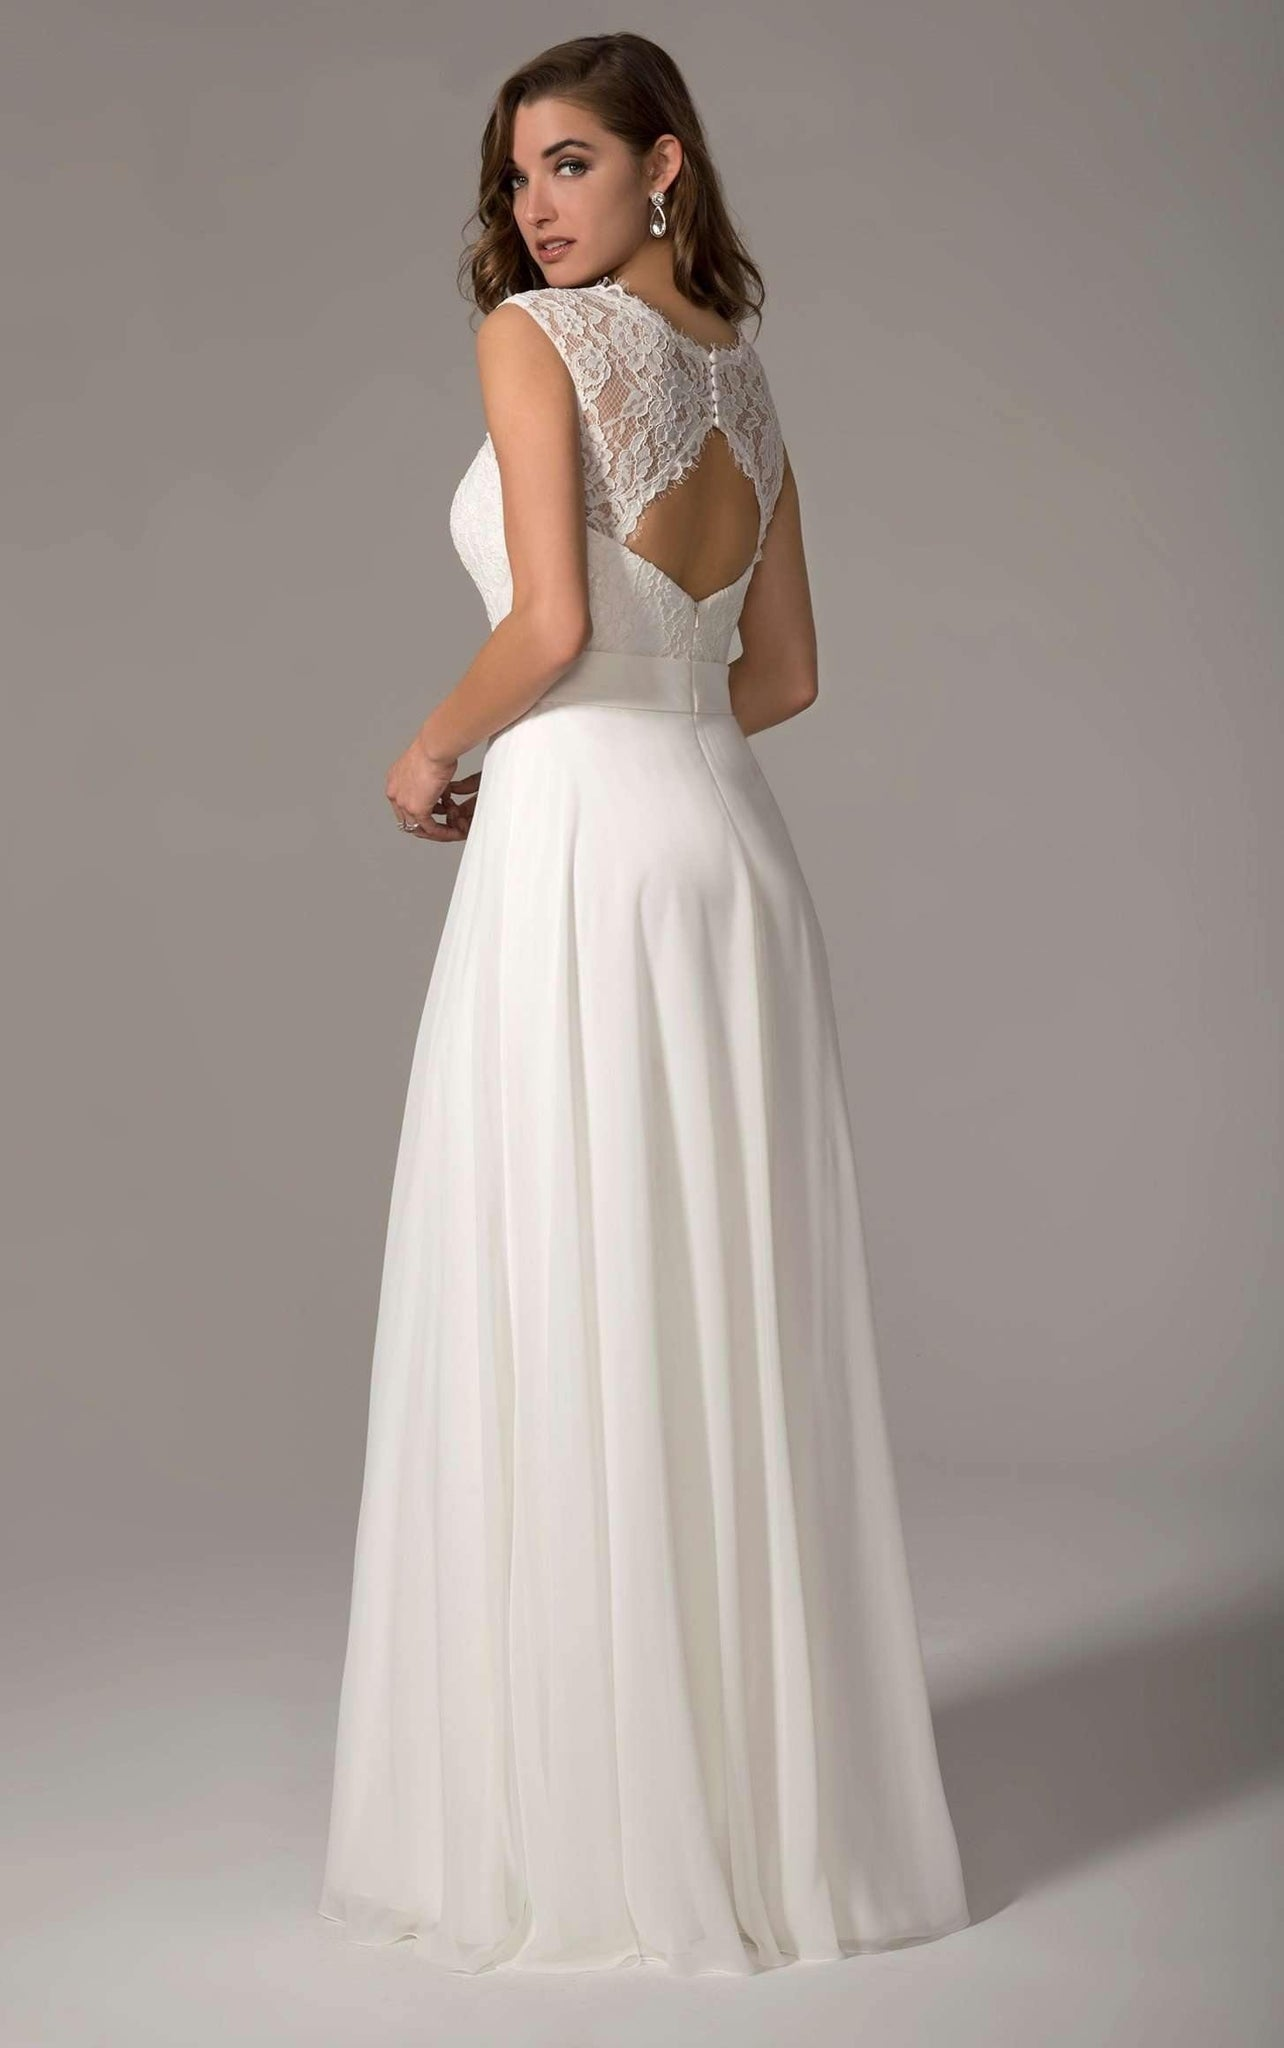 VENUS BRIDAL - Kitty - Adore Bridal and Occasion Wear